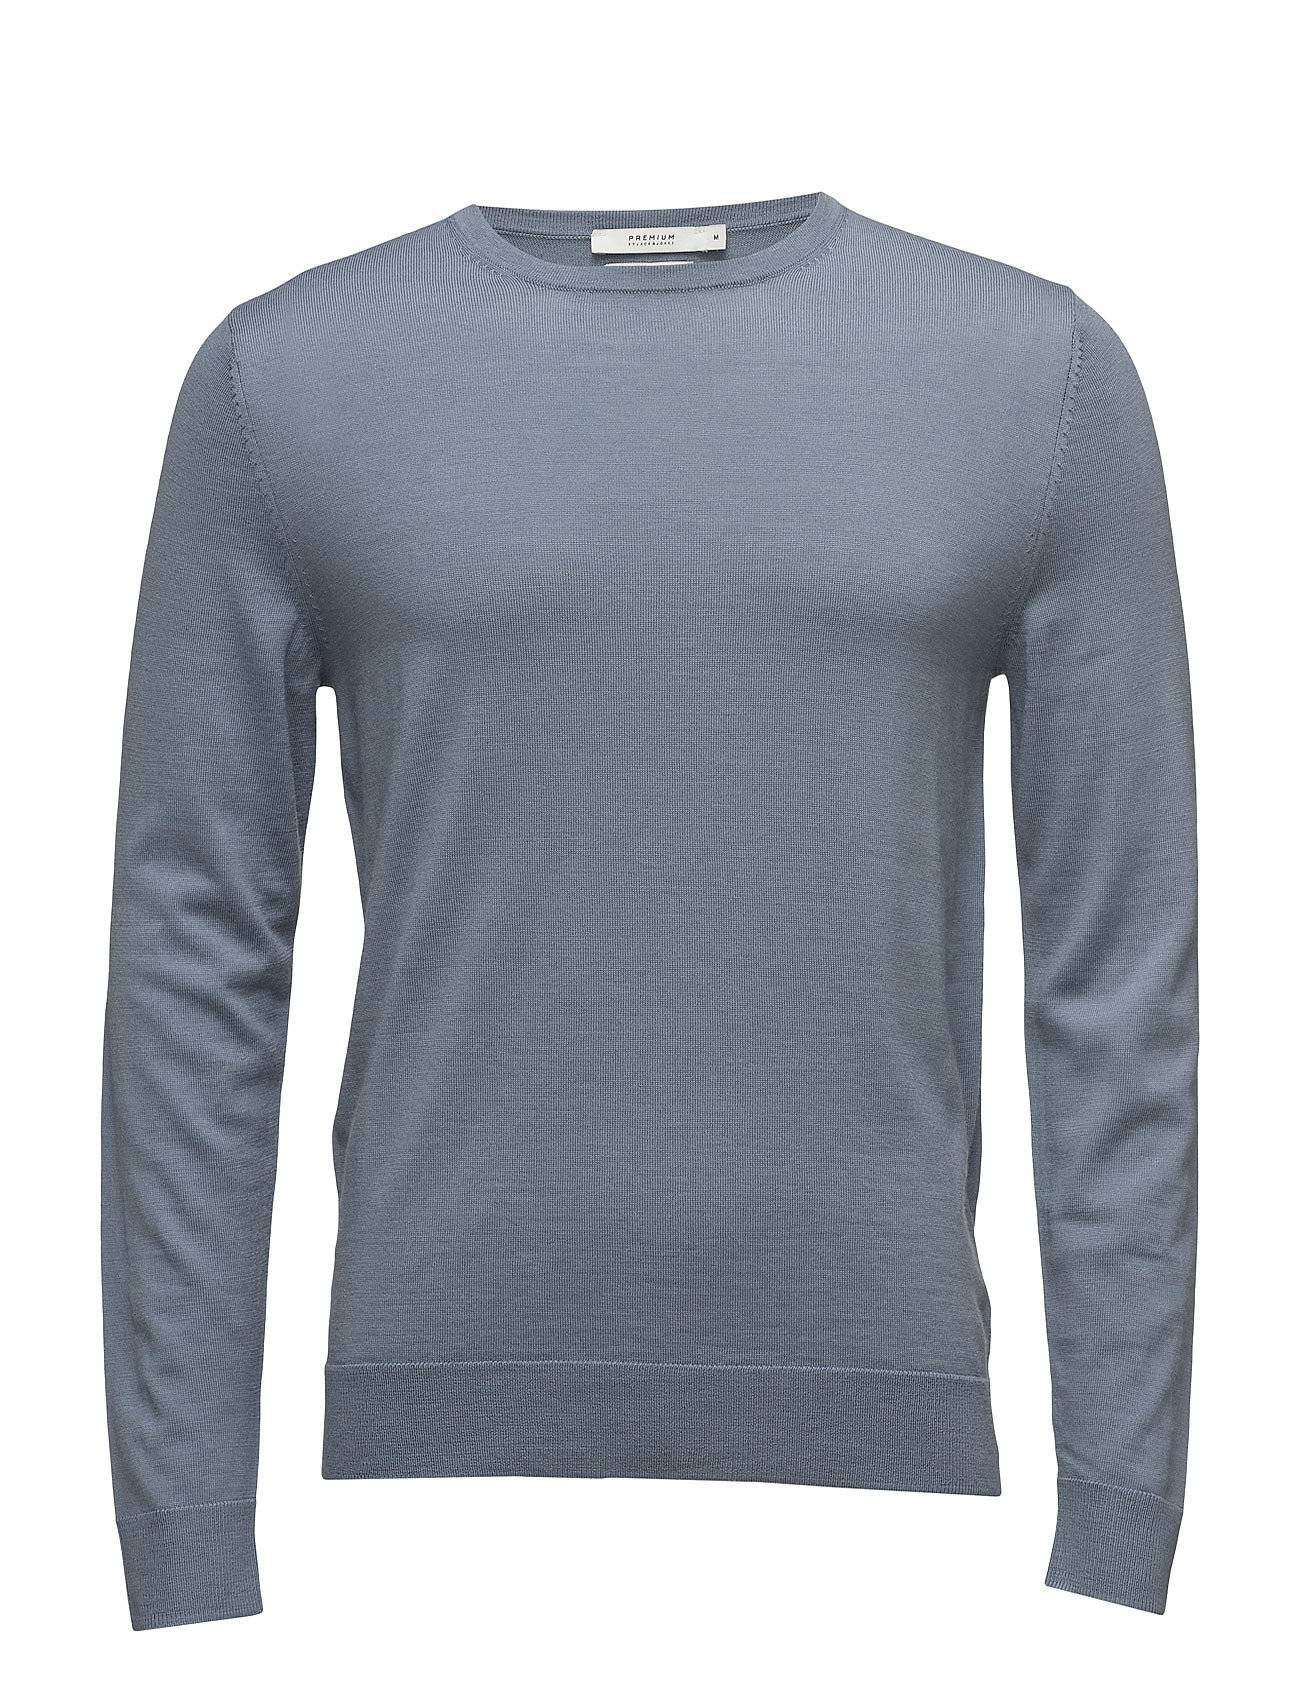 Jack & Jones Premium Jprmark Knit Crew Neck Noos